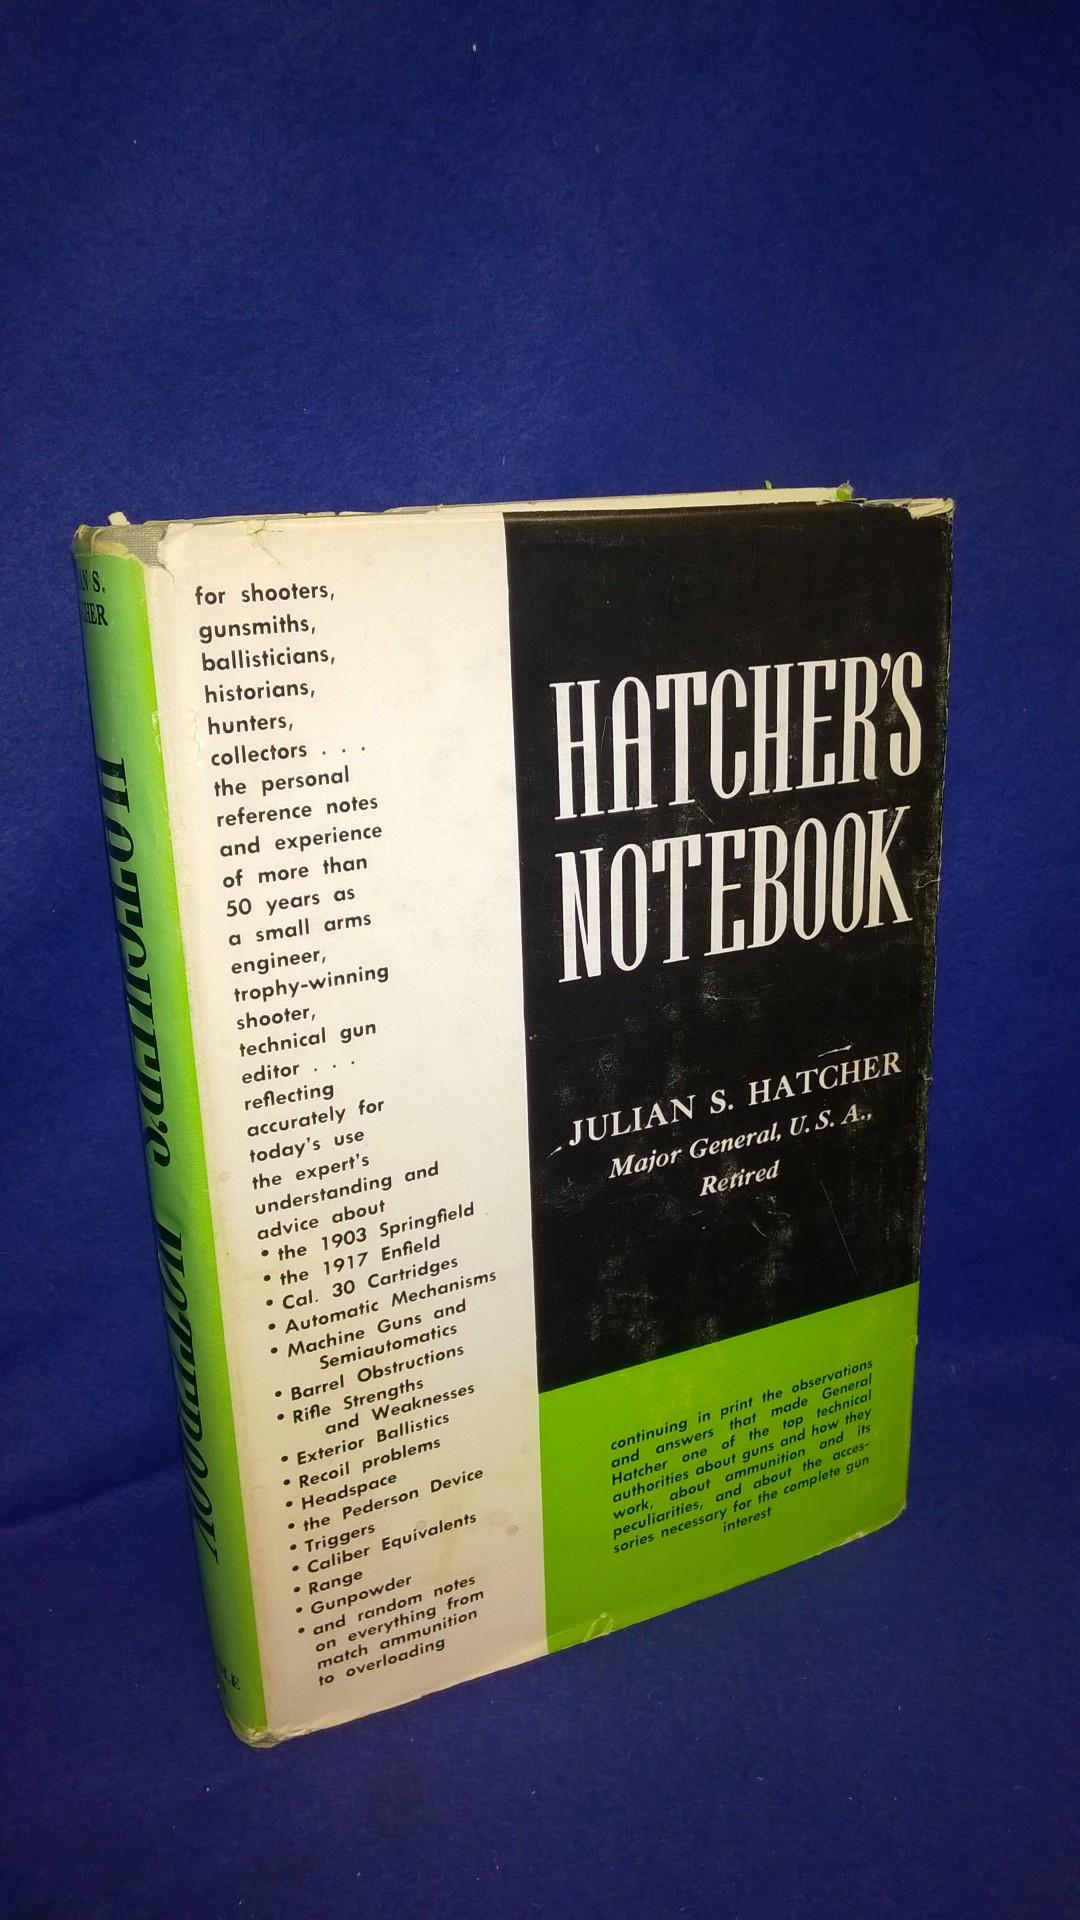 Hatcher's Notebook: A Standard Reference Book for Shooters, Gunsmiths, Ballisticians, Historians, Hunters and Collectors.